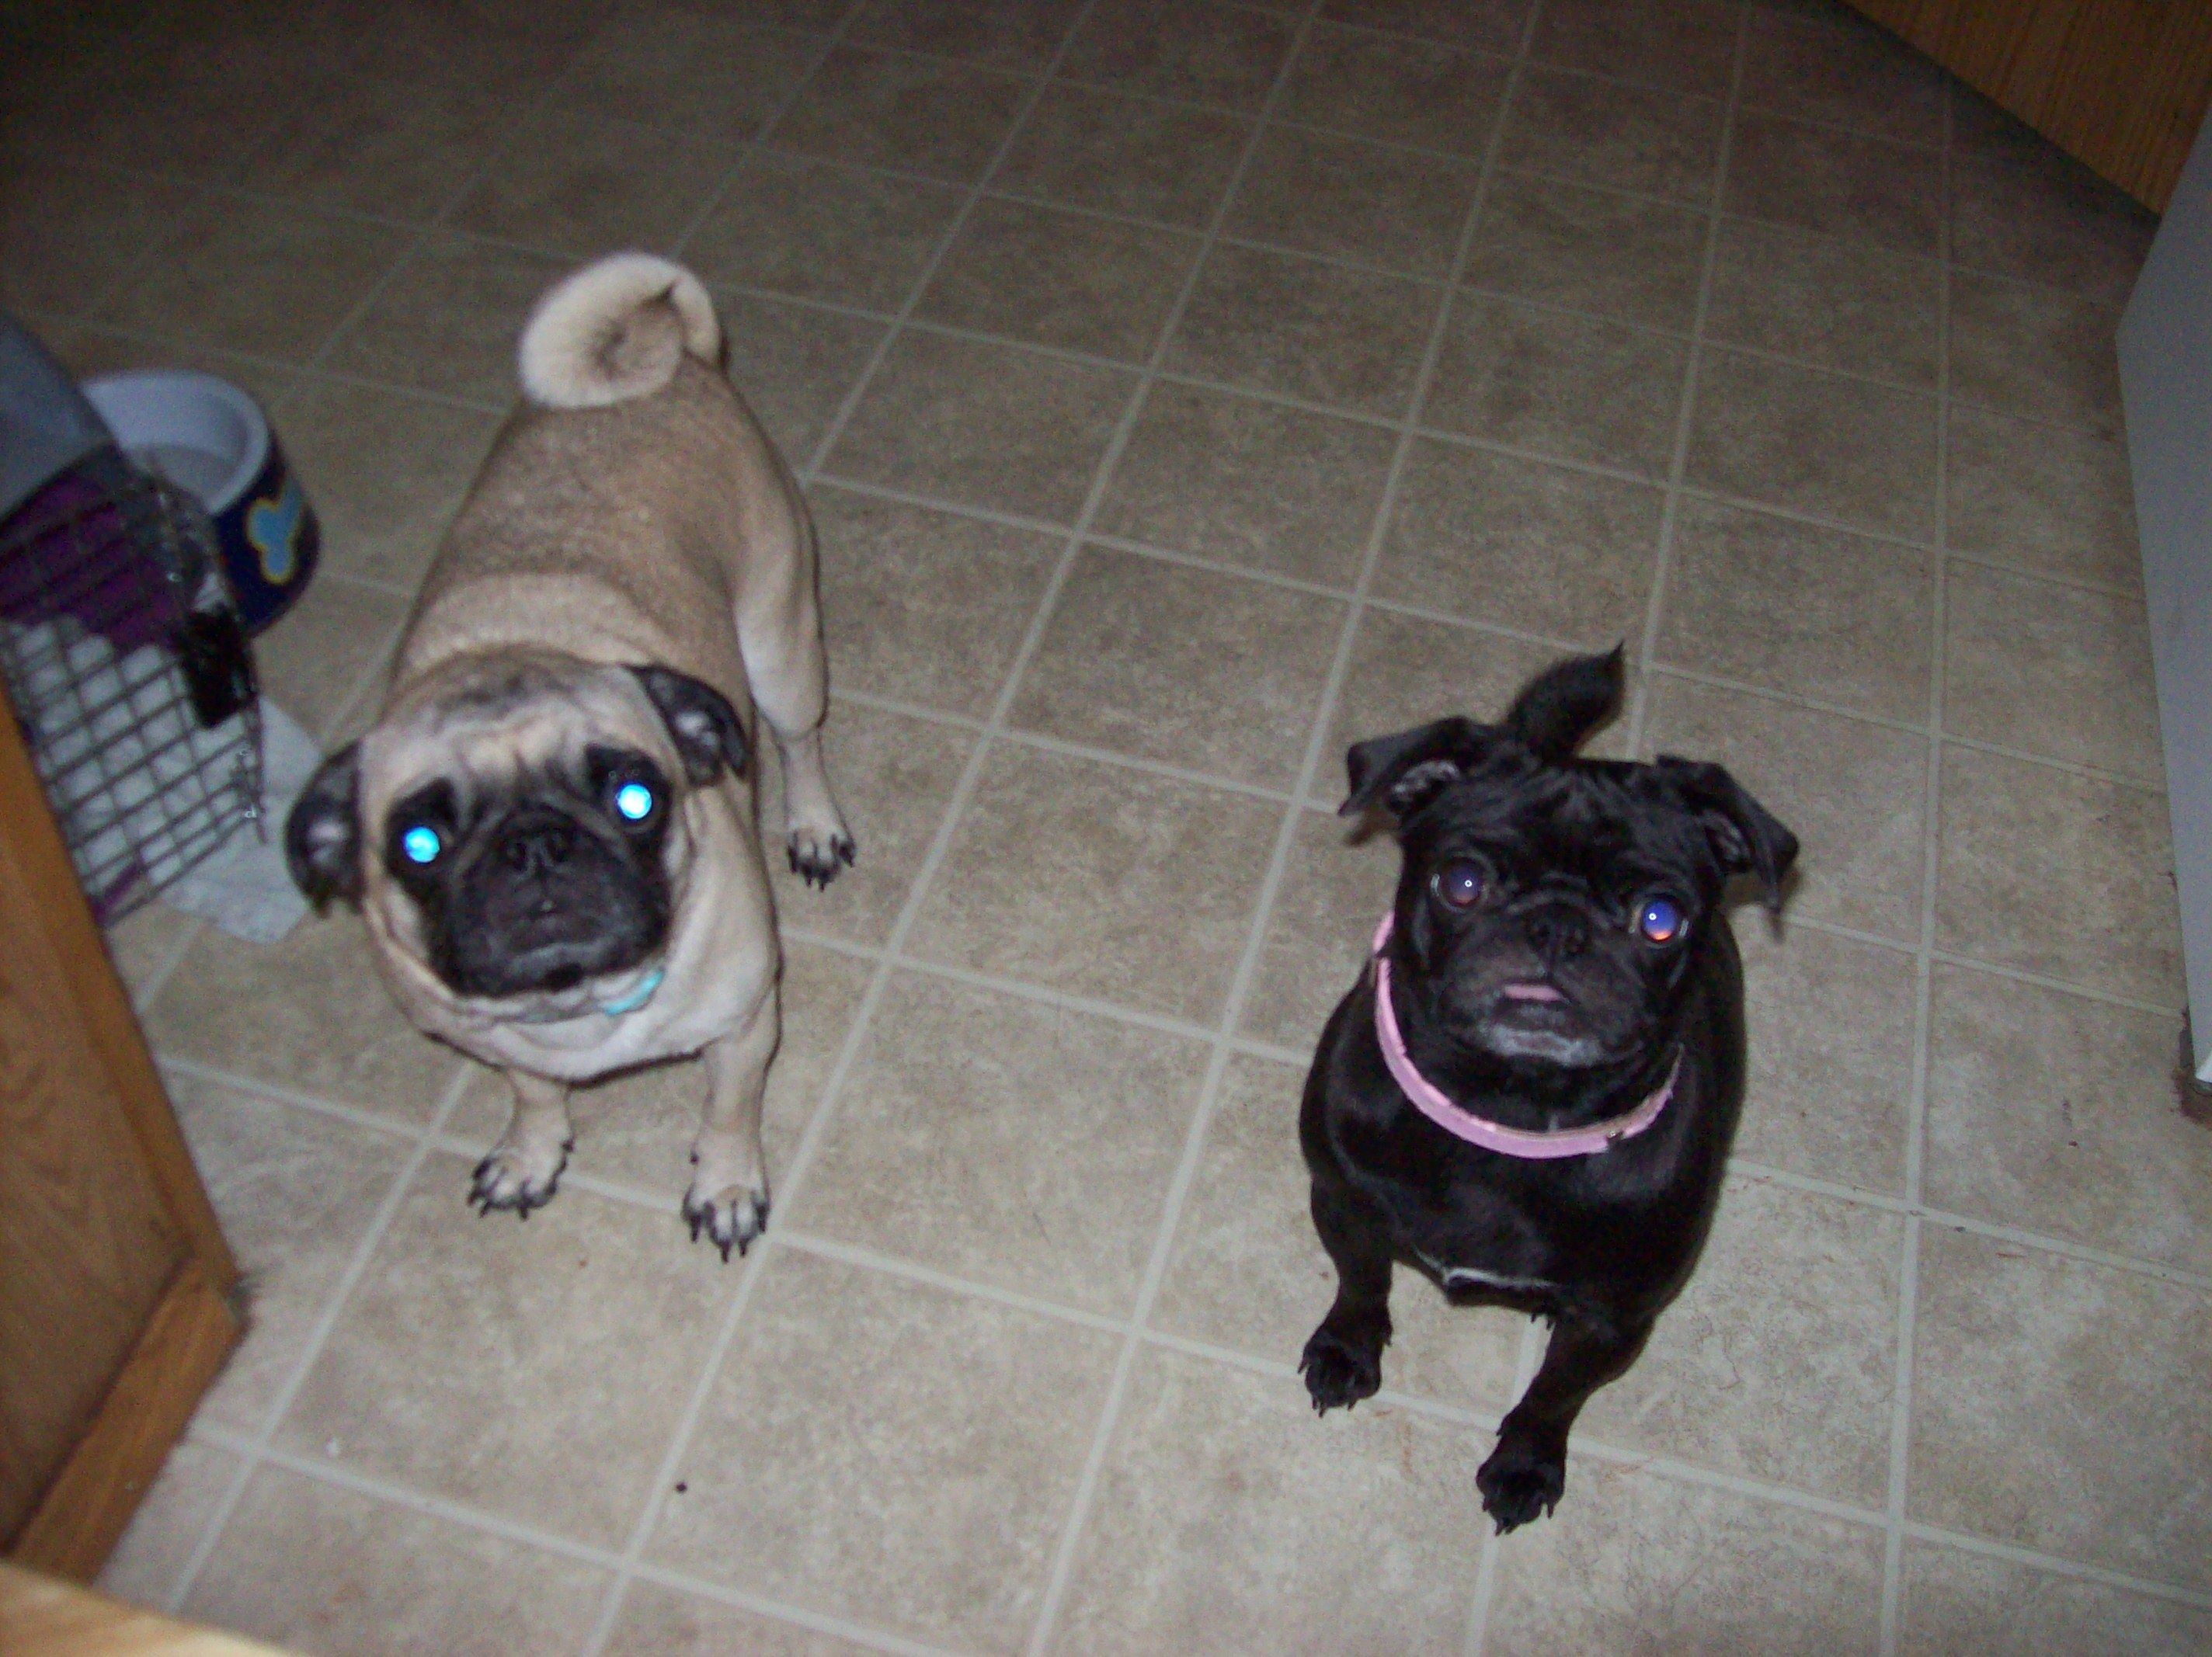 Glancing My Ny Looking Dogs My Ny Looking Dogs Pugs Kisses Pinterest Dog Most Ny Looking Dogs Ny Looking Cartoon Dogs bark post Funny Looking Dogs